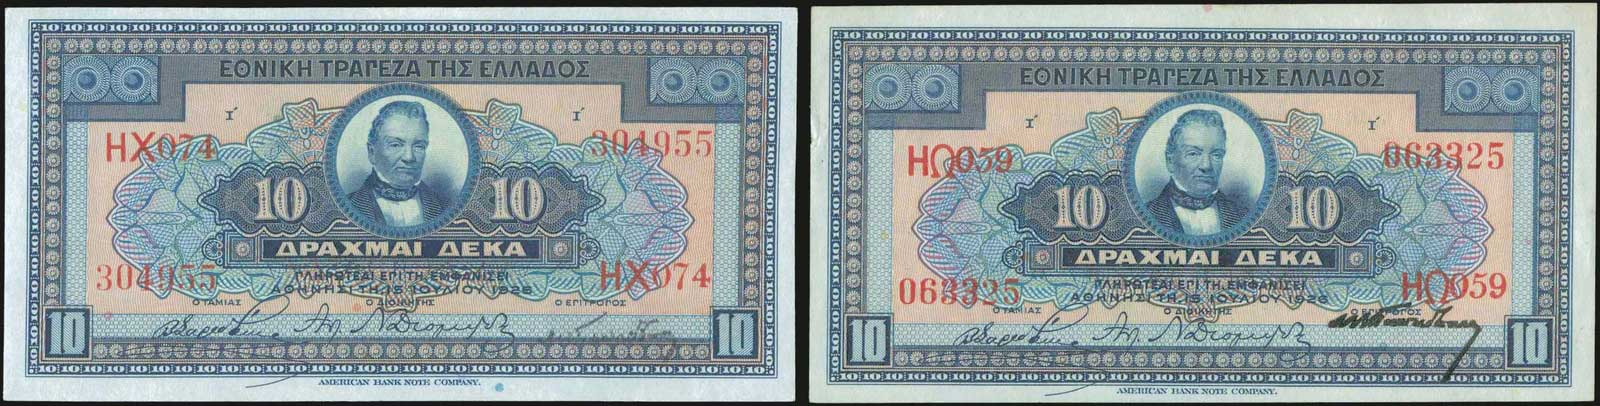 Lot 9277 - GREECE-  PAPER MONEY - BANKNOTES National Bank of Greece -  A. Karamitsos Public & LIVE Bid Auction 610 Coins, Medals & Banknotes